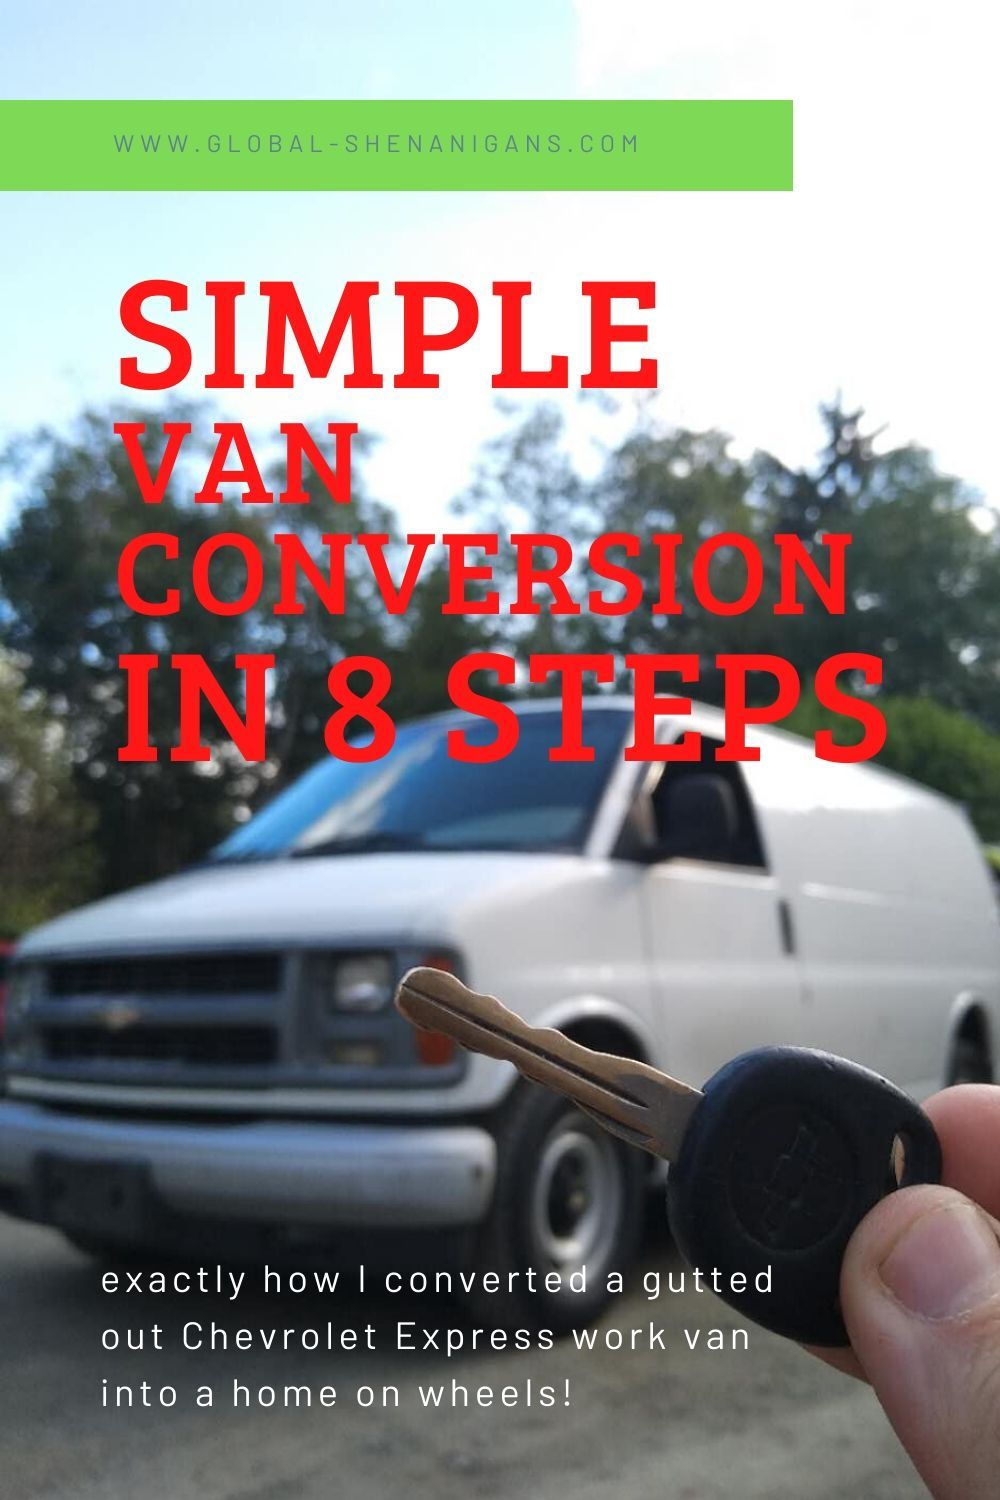 Simple van conversion for a Chevy Express! 8 steps on how to turn a gutted out work van into a home on wheels... #vanlife #vanconversion #howtoguide #lifeontheroad